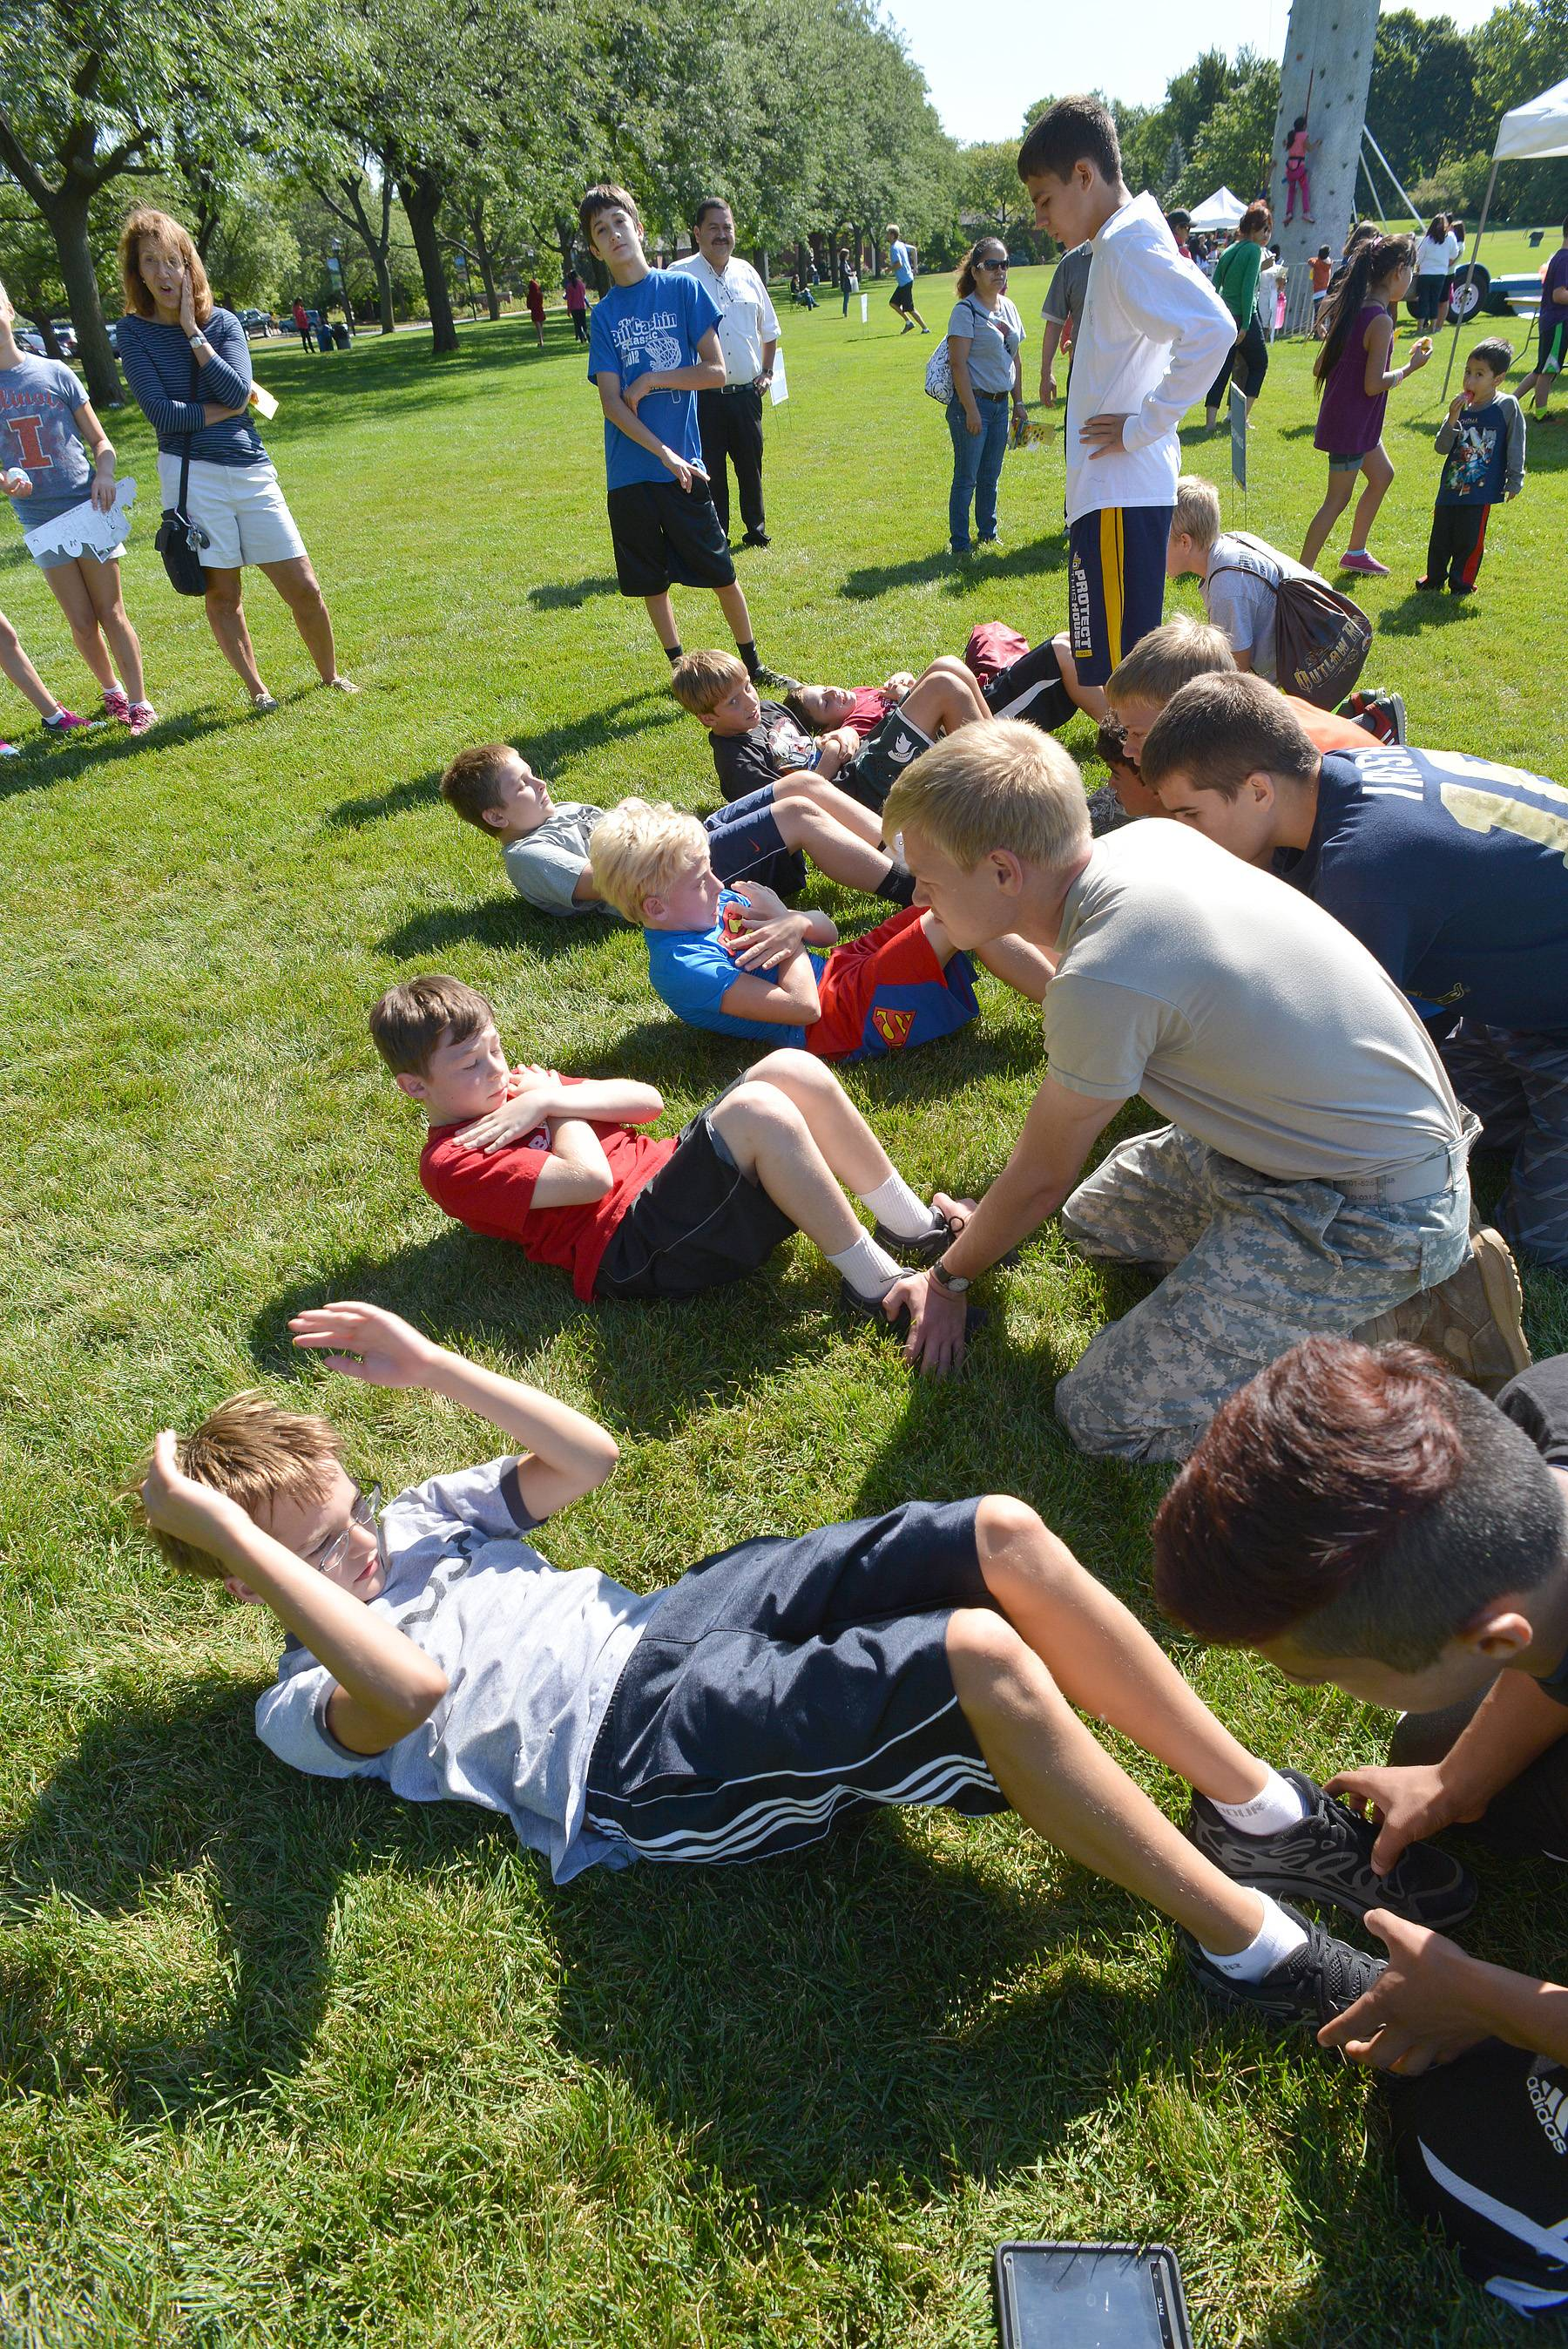 Participants went through more traditional boot camp exercises such as situps during Rep. Jeanne Ives' second annual Kids' Fitness and Health Boot Camp at Cantigny Park Friday.